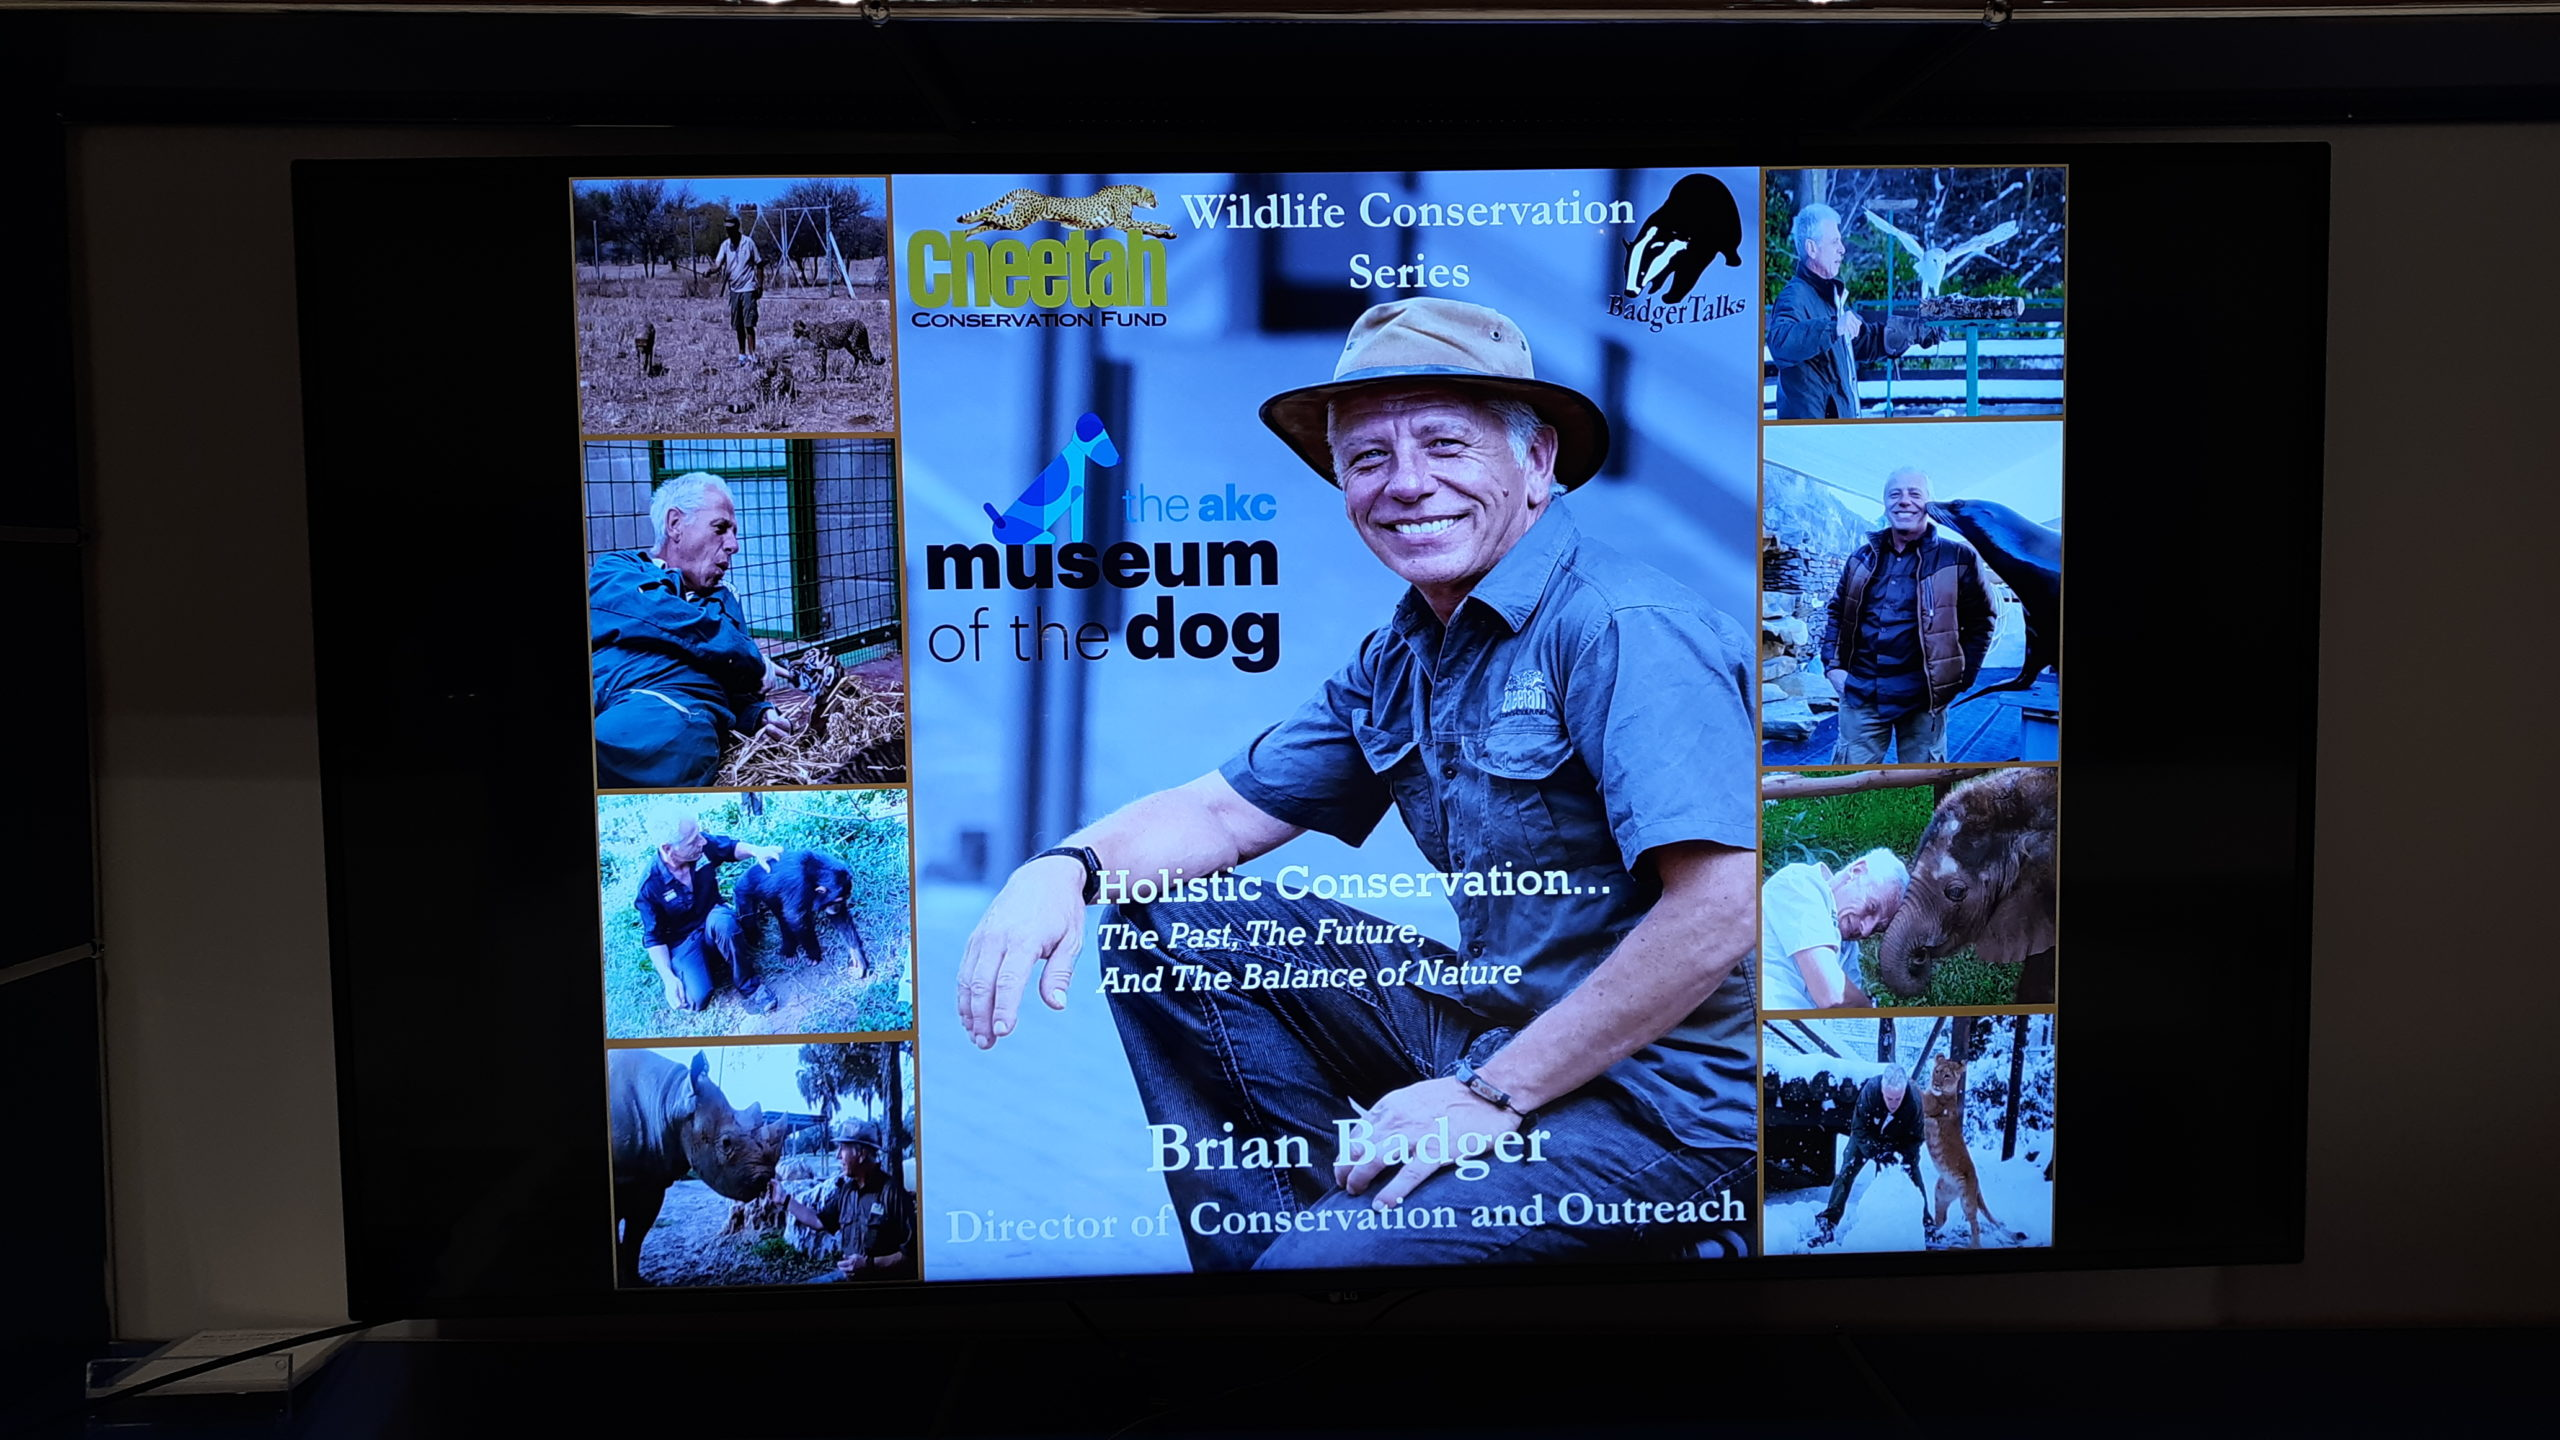 Brian Badger at the Dog Museum in New York City